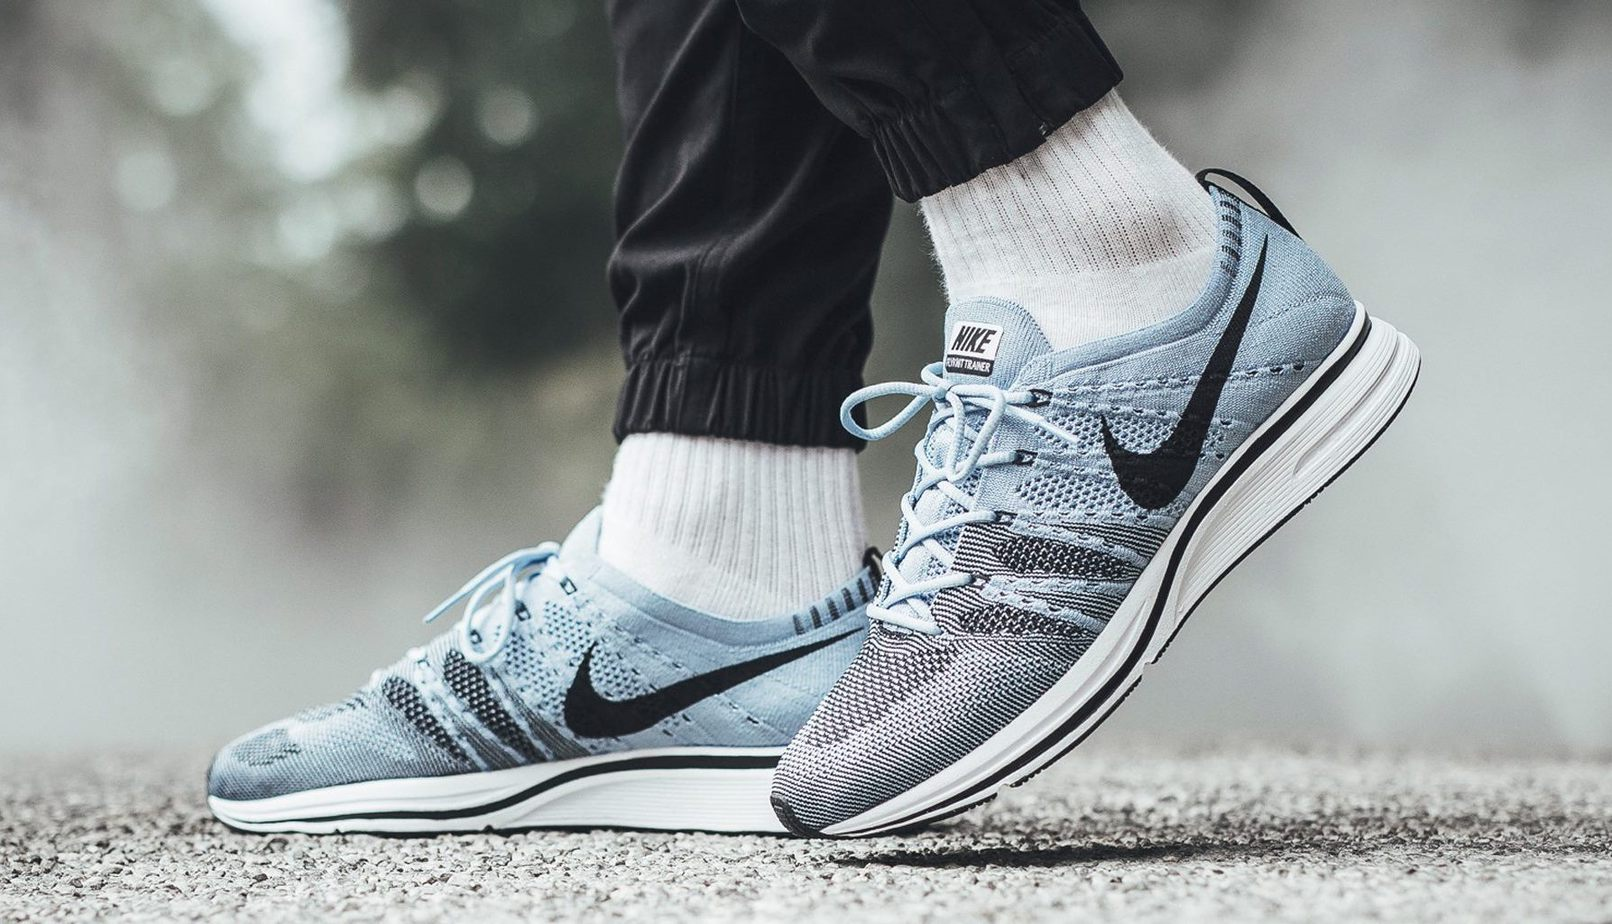 c8031354ddc1 ... spain nike flyknit trainer cirrus blue release links justfreshkicks  c4669 f8b89